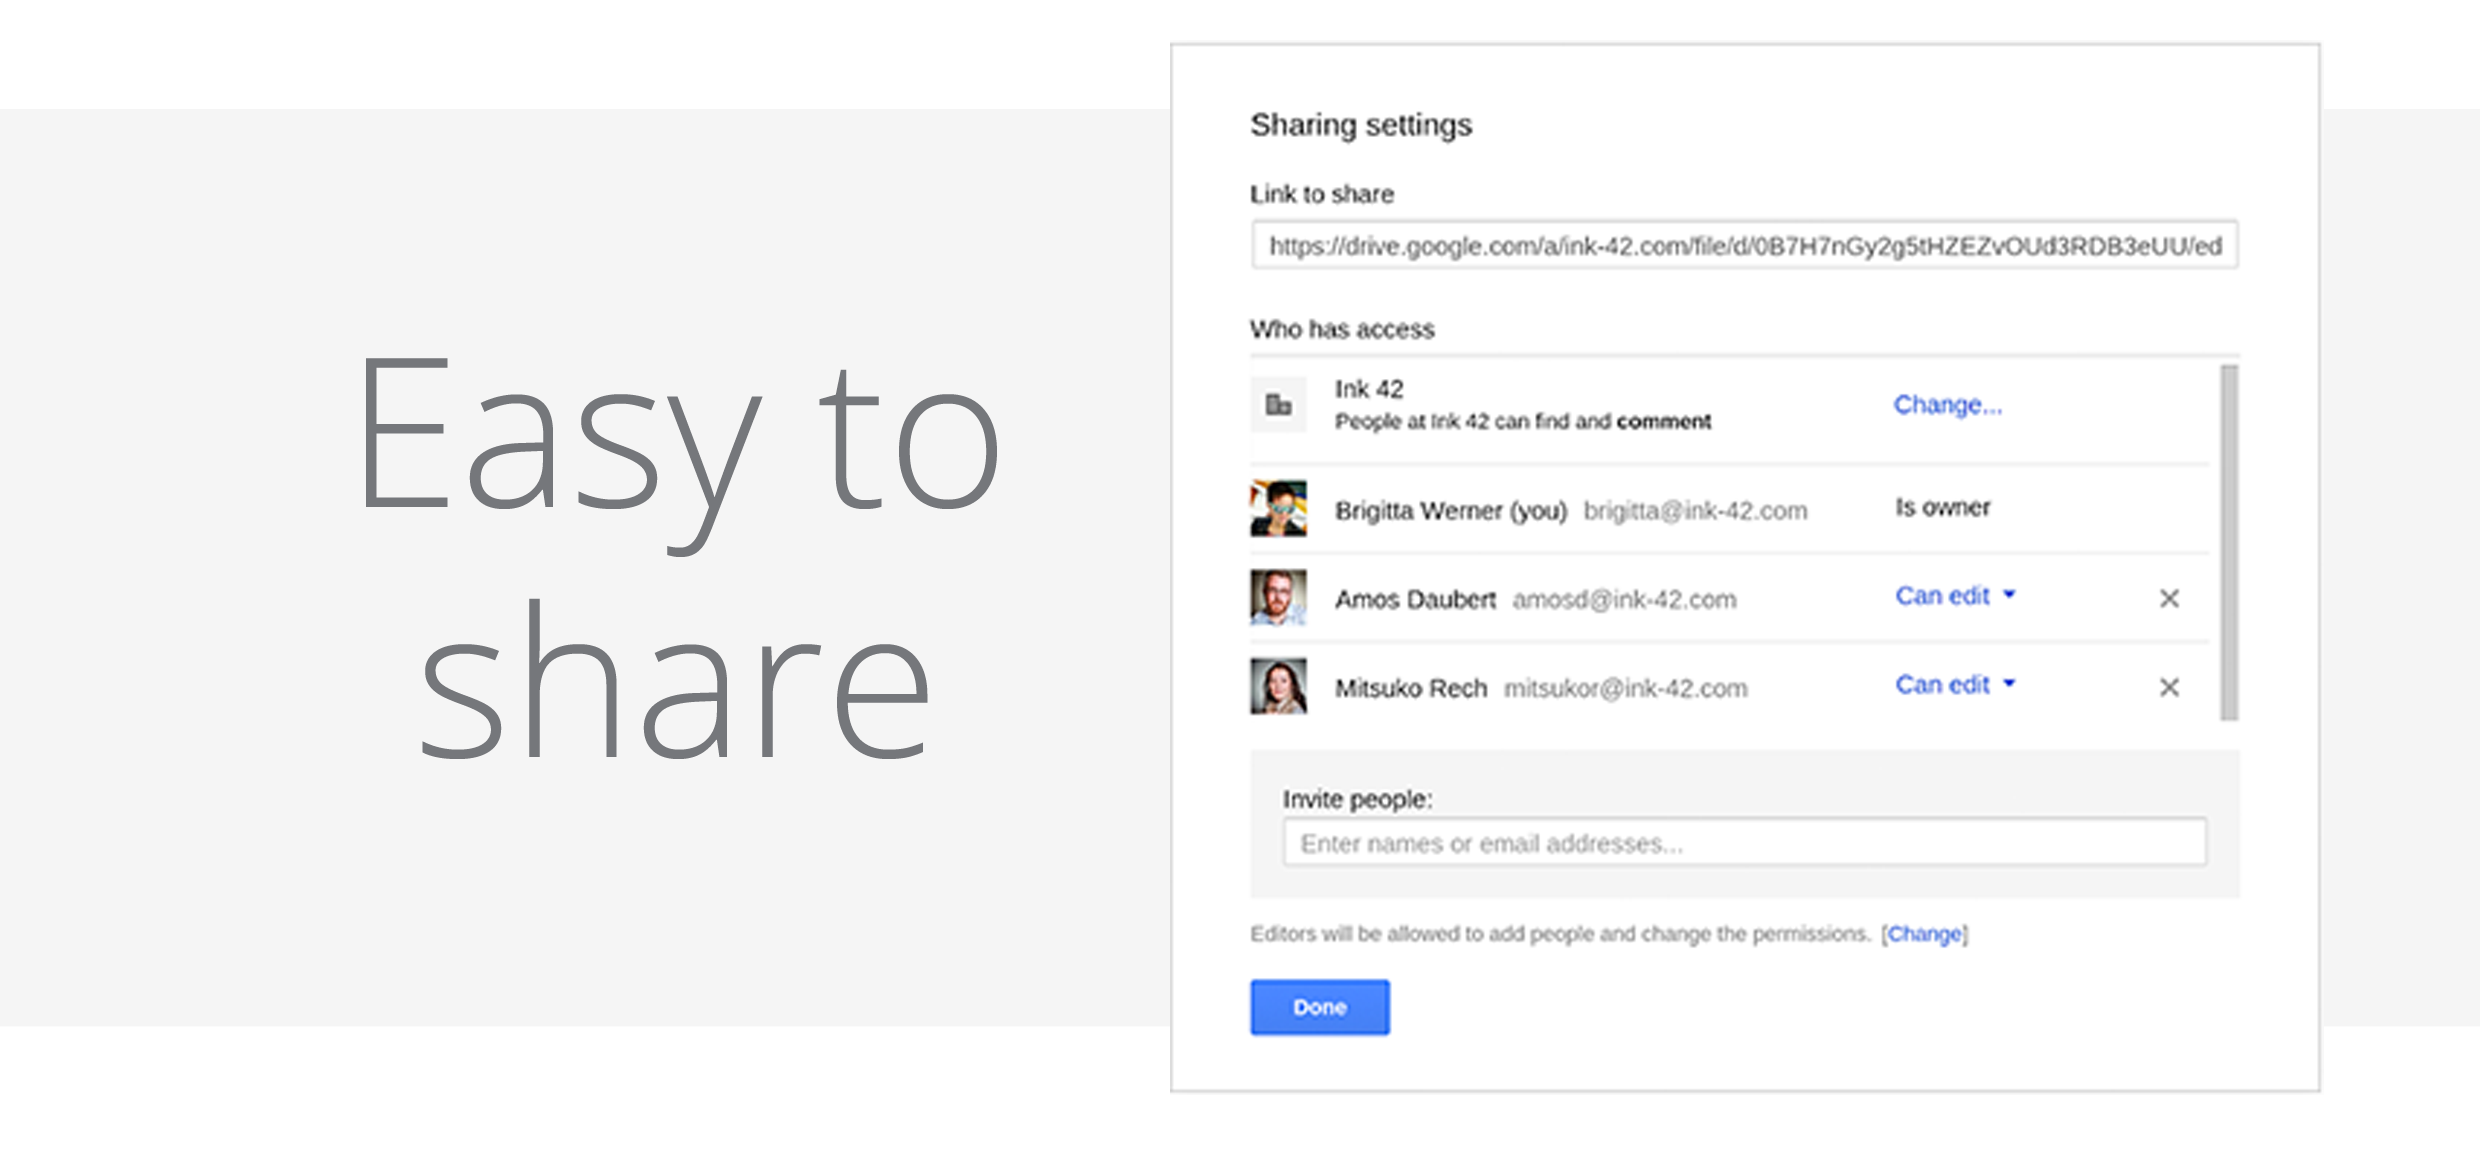 Google Drive for Work - Easy to share